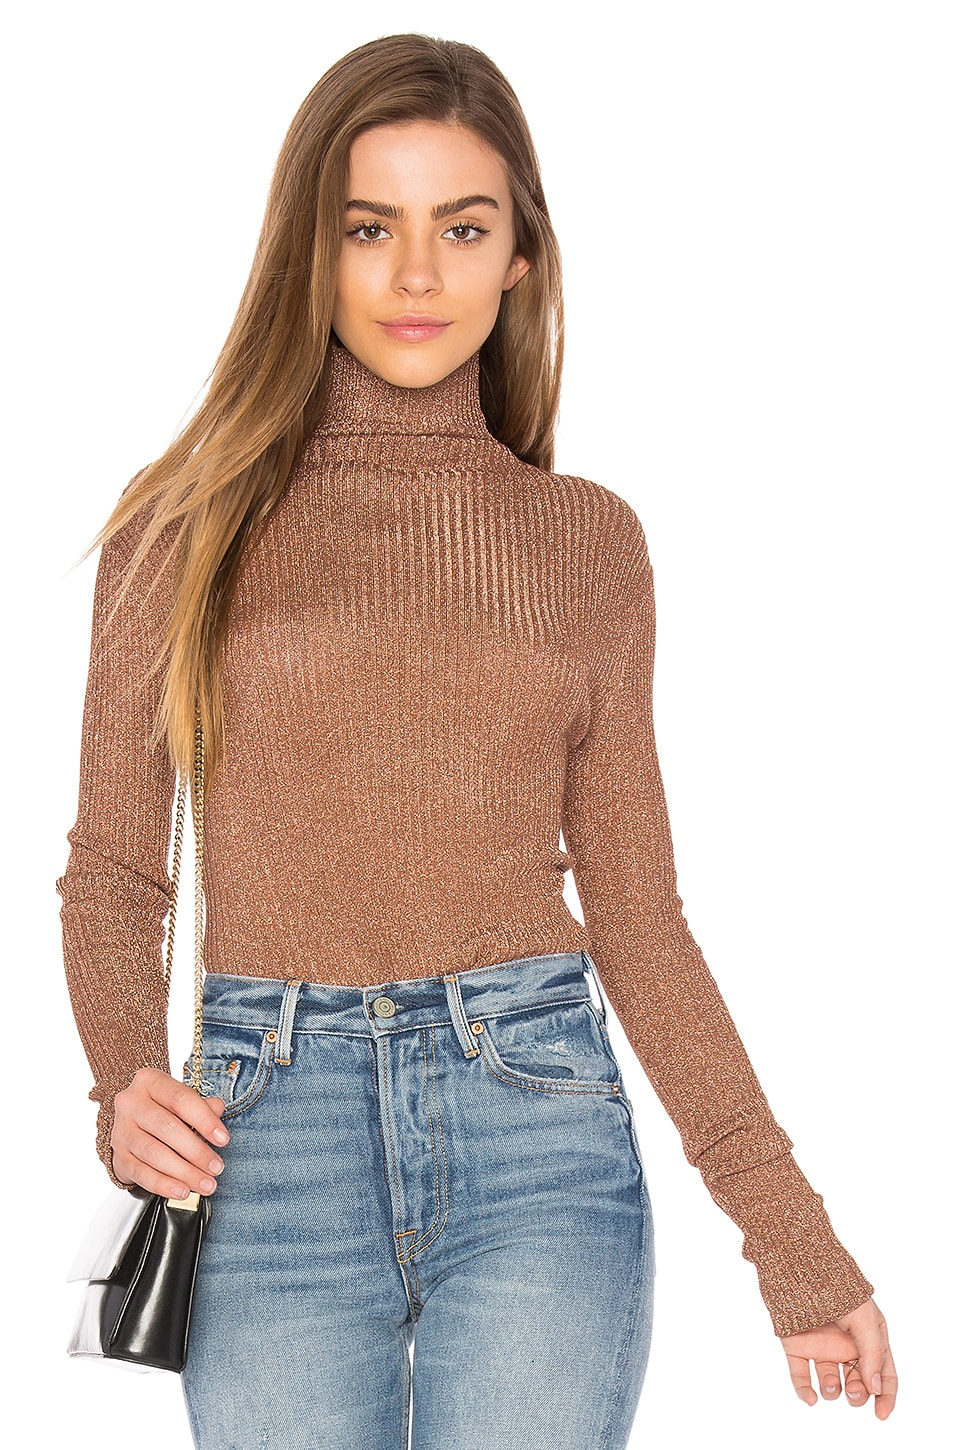 Tibi Turtleneck in Rose Gold